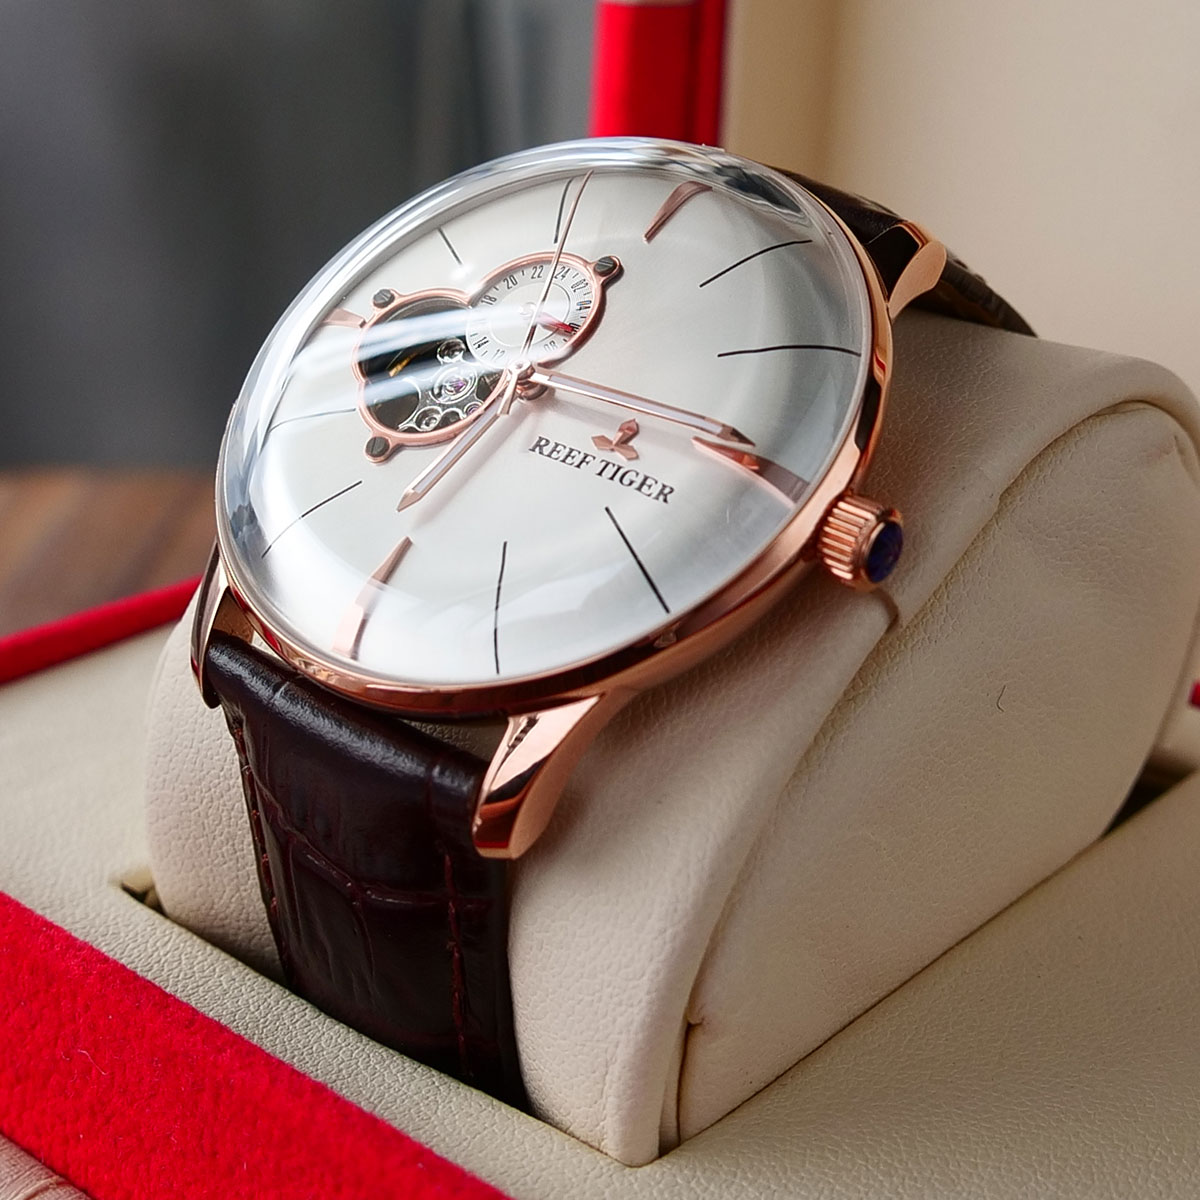 New Reef Tiger/RT Luxury Rose Gold Watch Men's Automatic Mechanical Watches Tourbillon Watches with Brown Leather Strap RGA8239|watch leather strap|watch menwatch men automatic - AliExpress